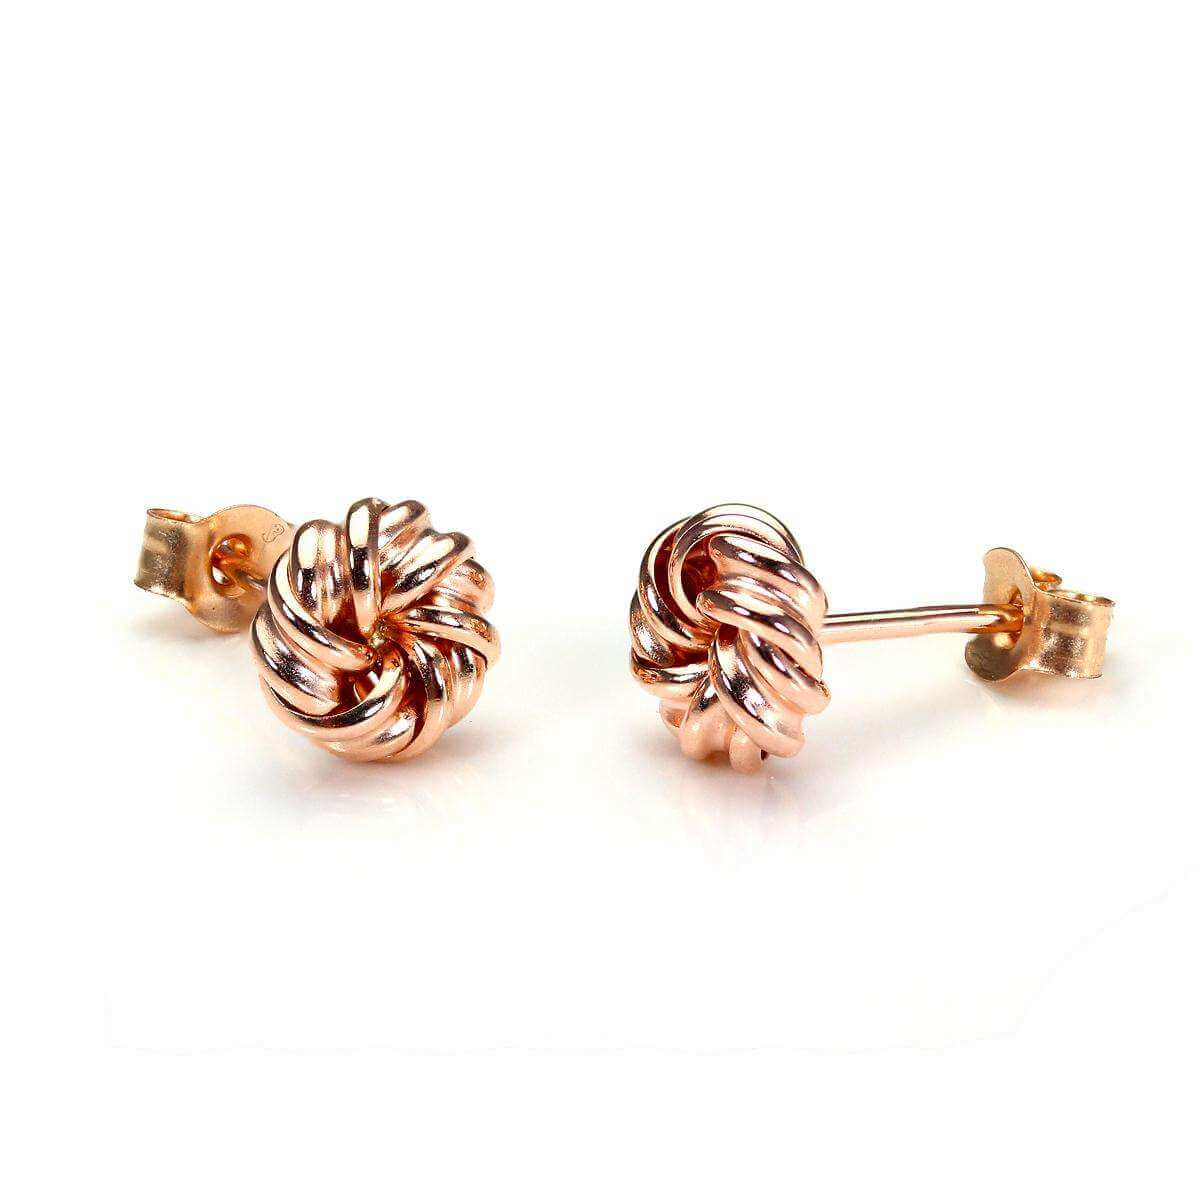 9ct Rose Gold 6mm Round Knot Stud Earrings